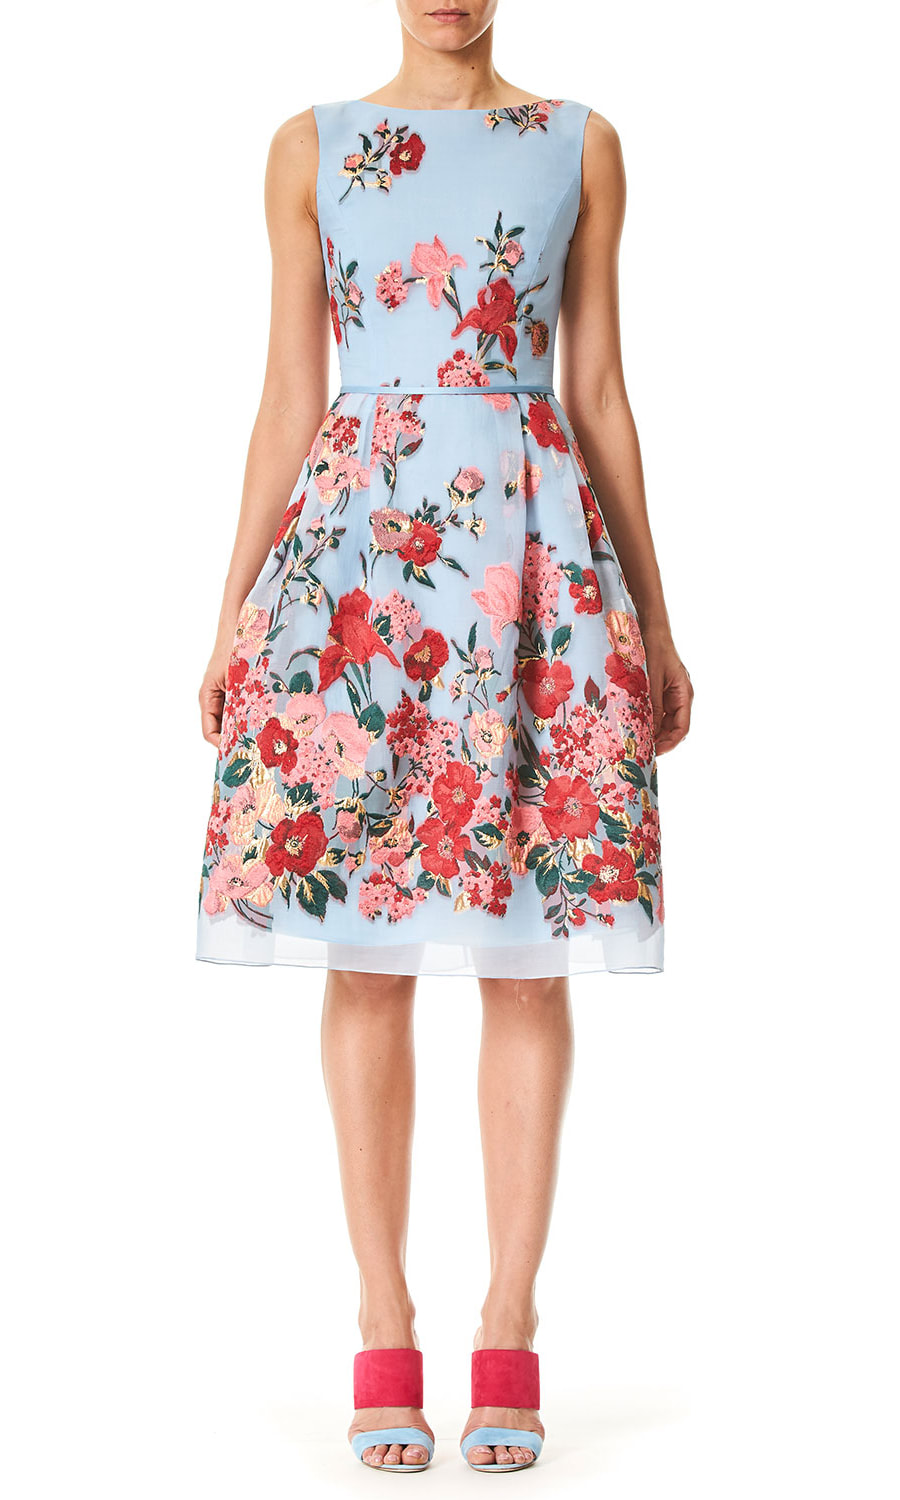 Carolina Herrera sleeveless blue floral dress from Resort 2018 collection